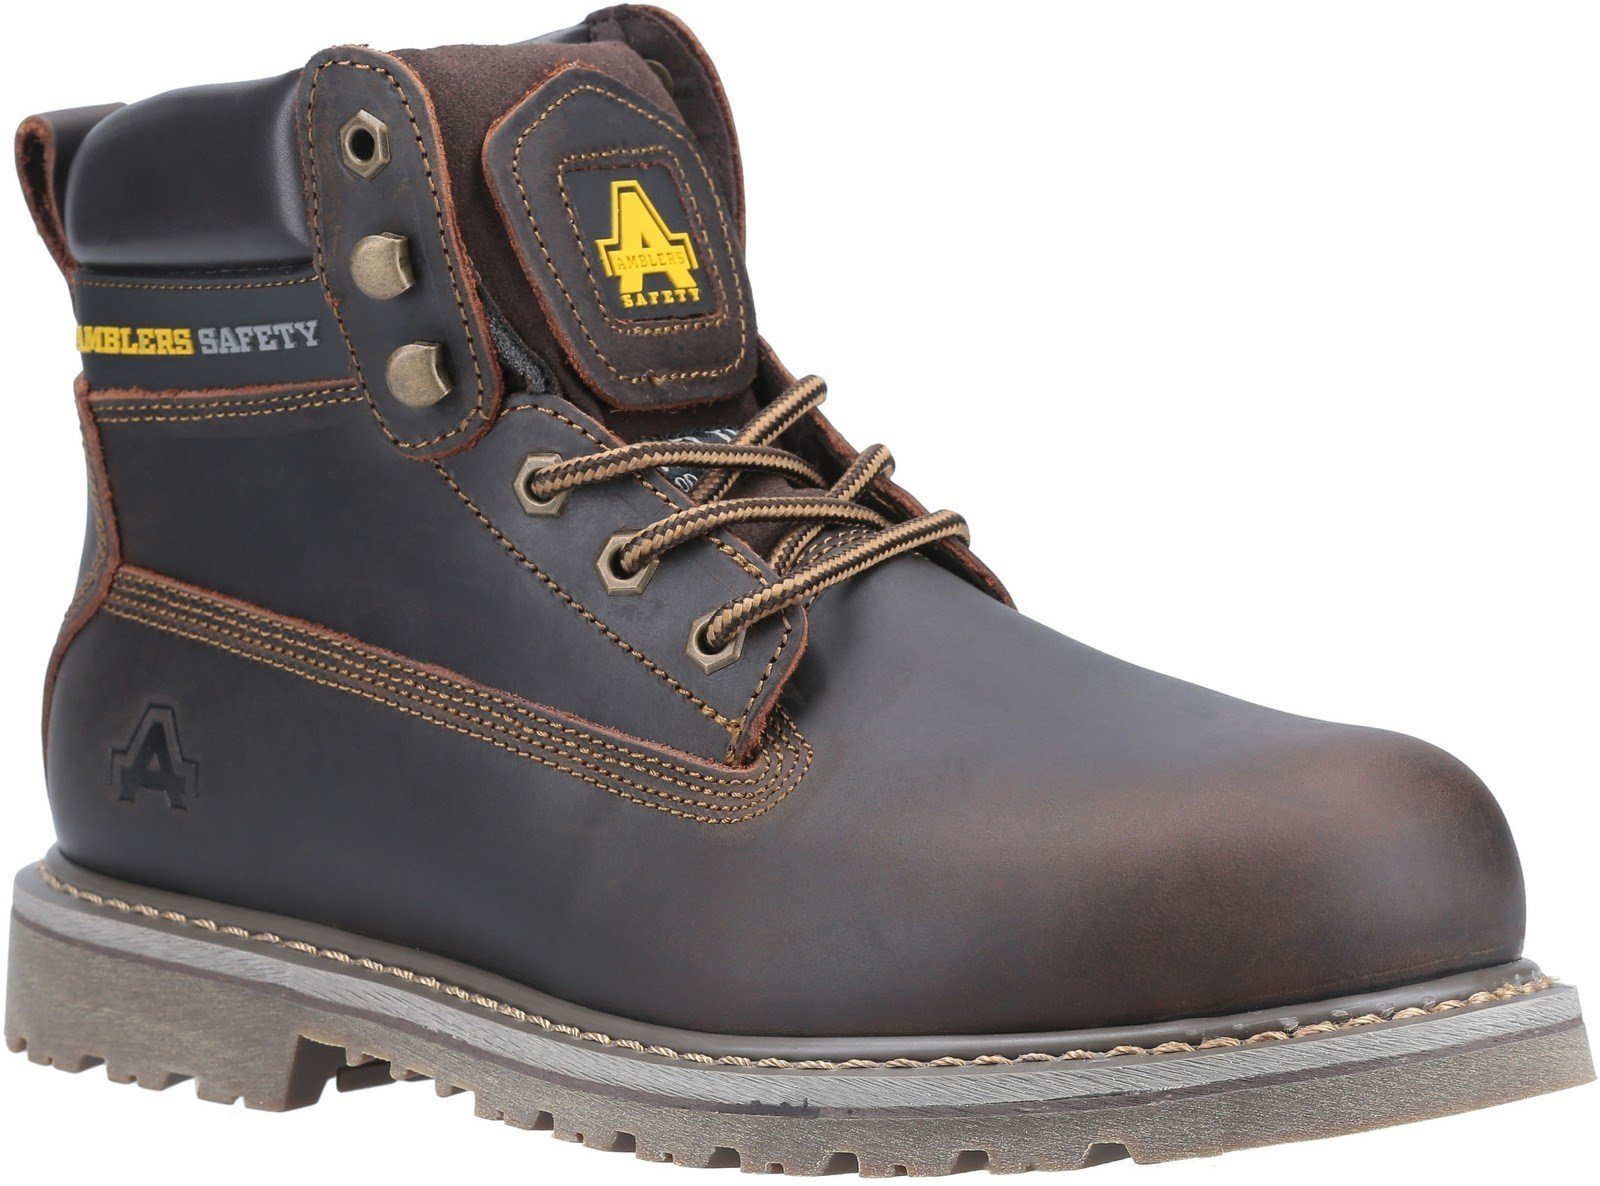 Amblers Unisex Safety Goodyear Welted Lace up Industrial Boot Brown 21250 - Brown 11